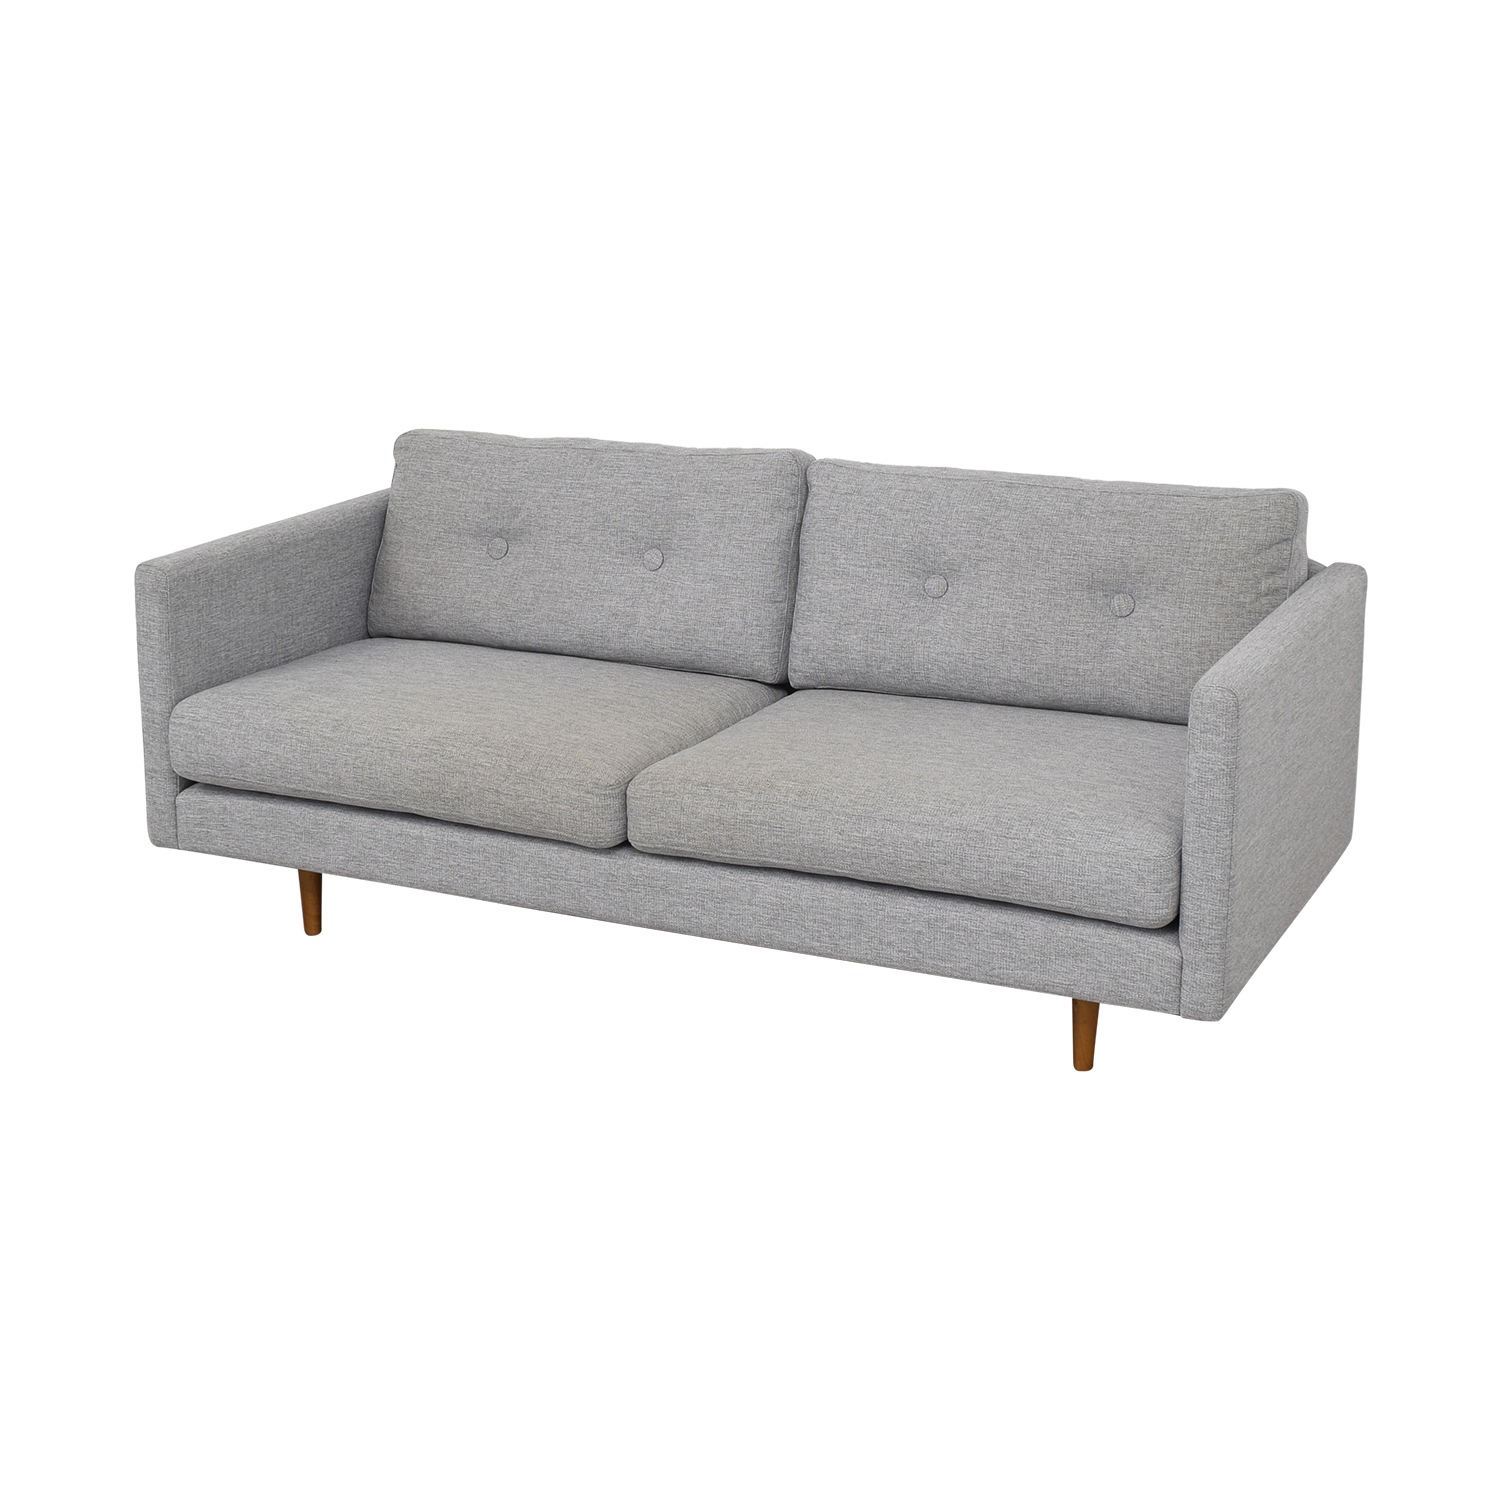 Article Article Anton 2.5 Seater Sofa for sale